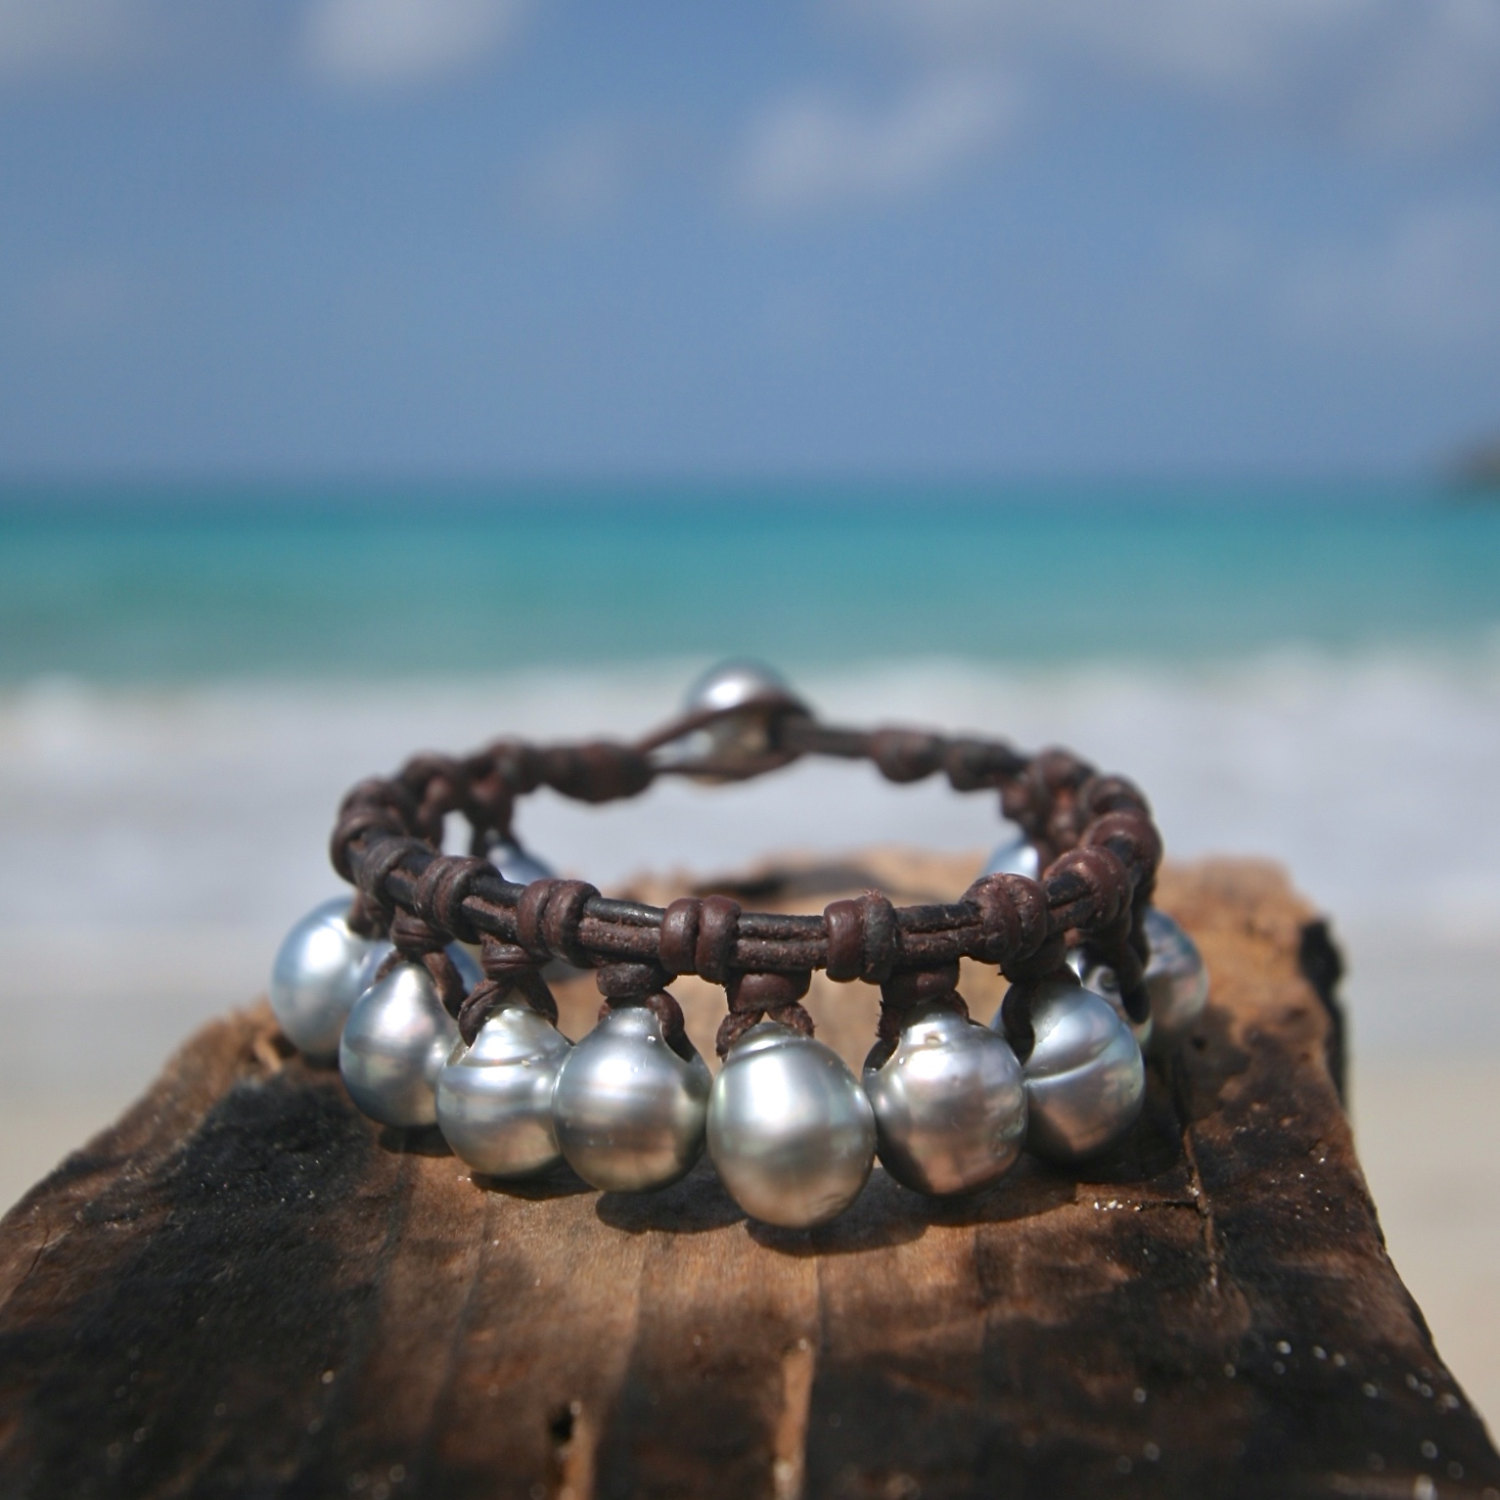 Tahitian pearls charm bracelet on leather for woman, cultured pearls, St Barth jewelry, boho, gypsea, gift for Christmas, bracelet for girl